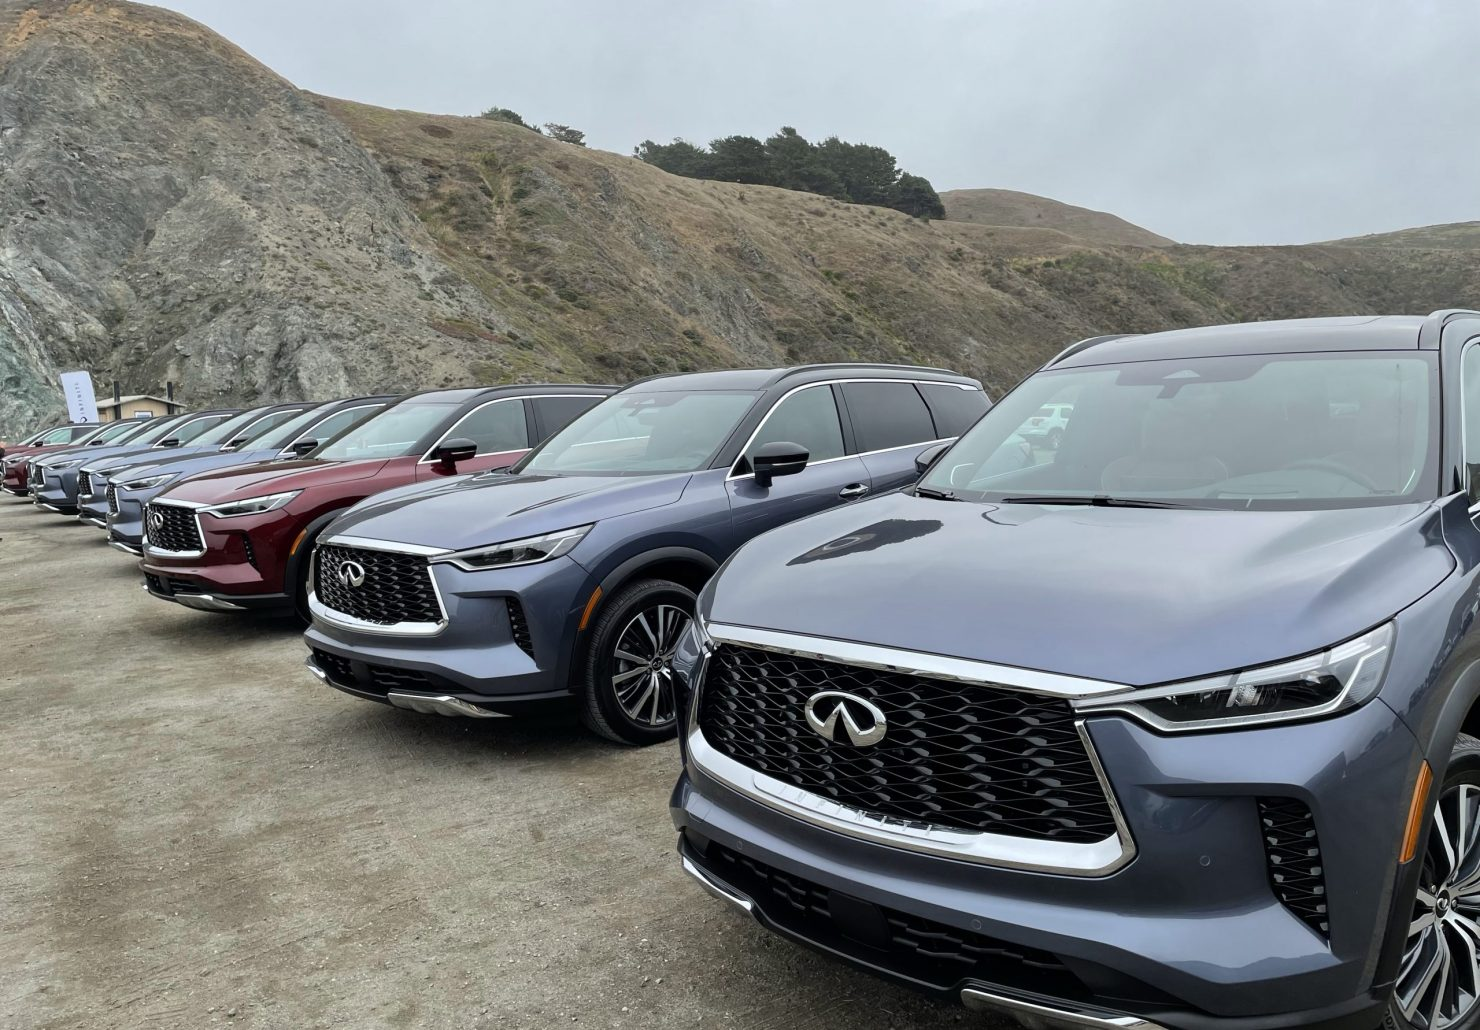 The 2022 Infiniti QX60 Tour: Behold the Most Beautiful, Luxurious SUV You Will Ever Drive 1